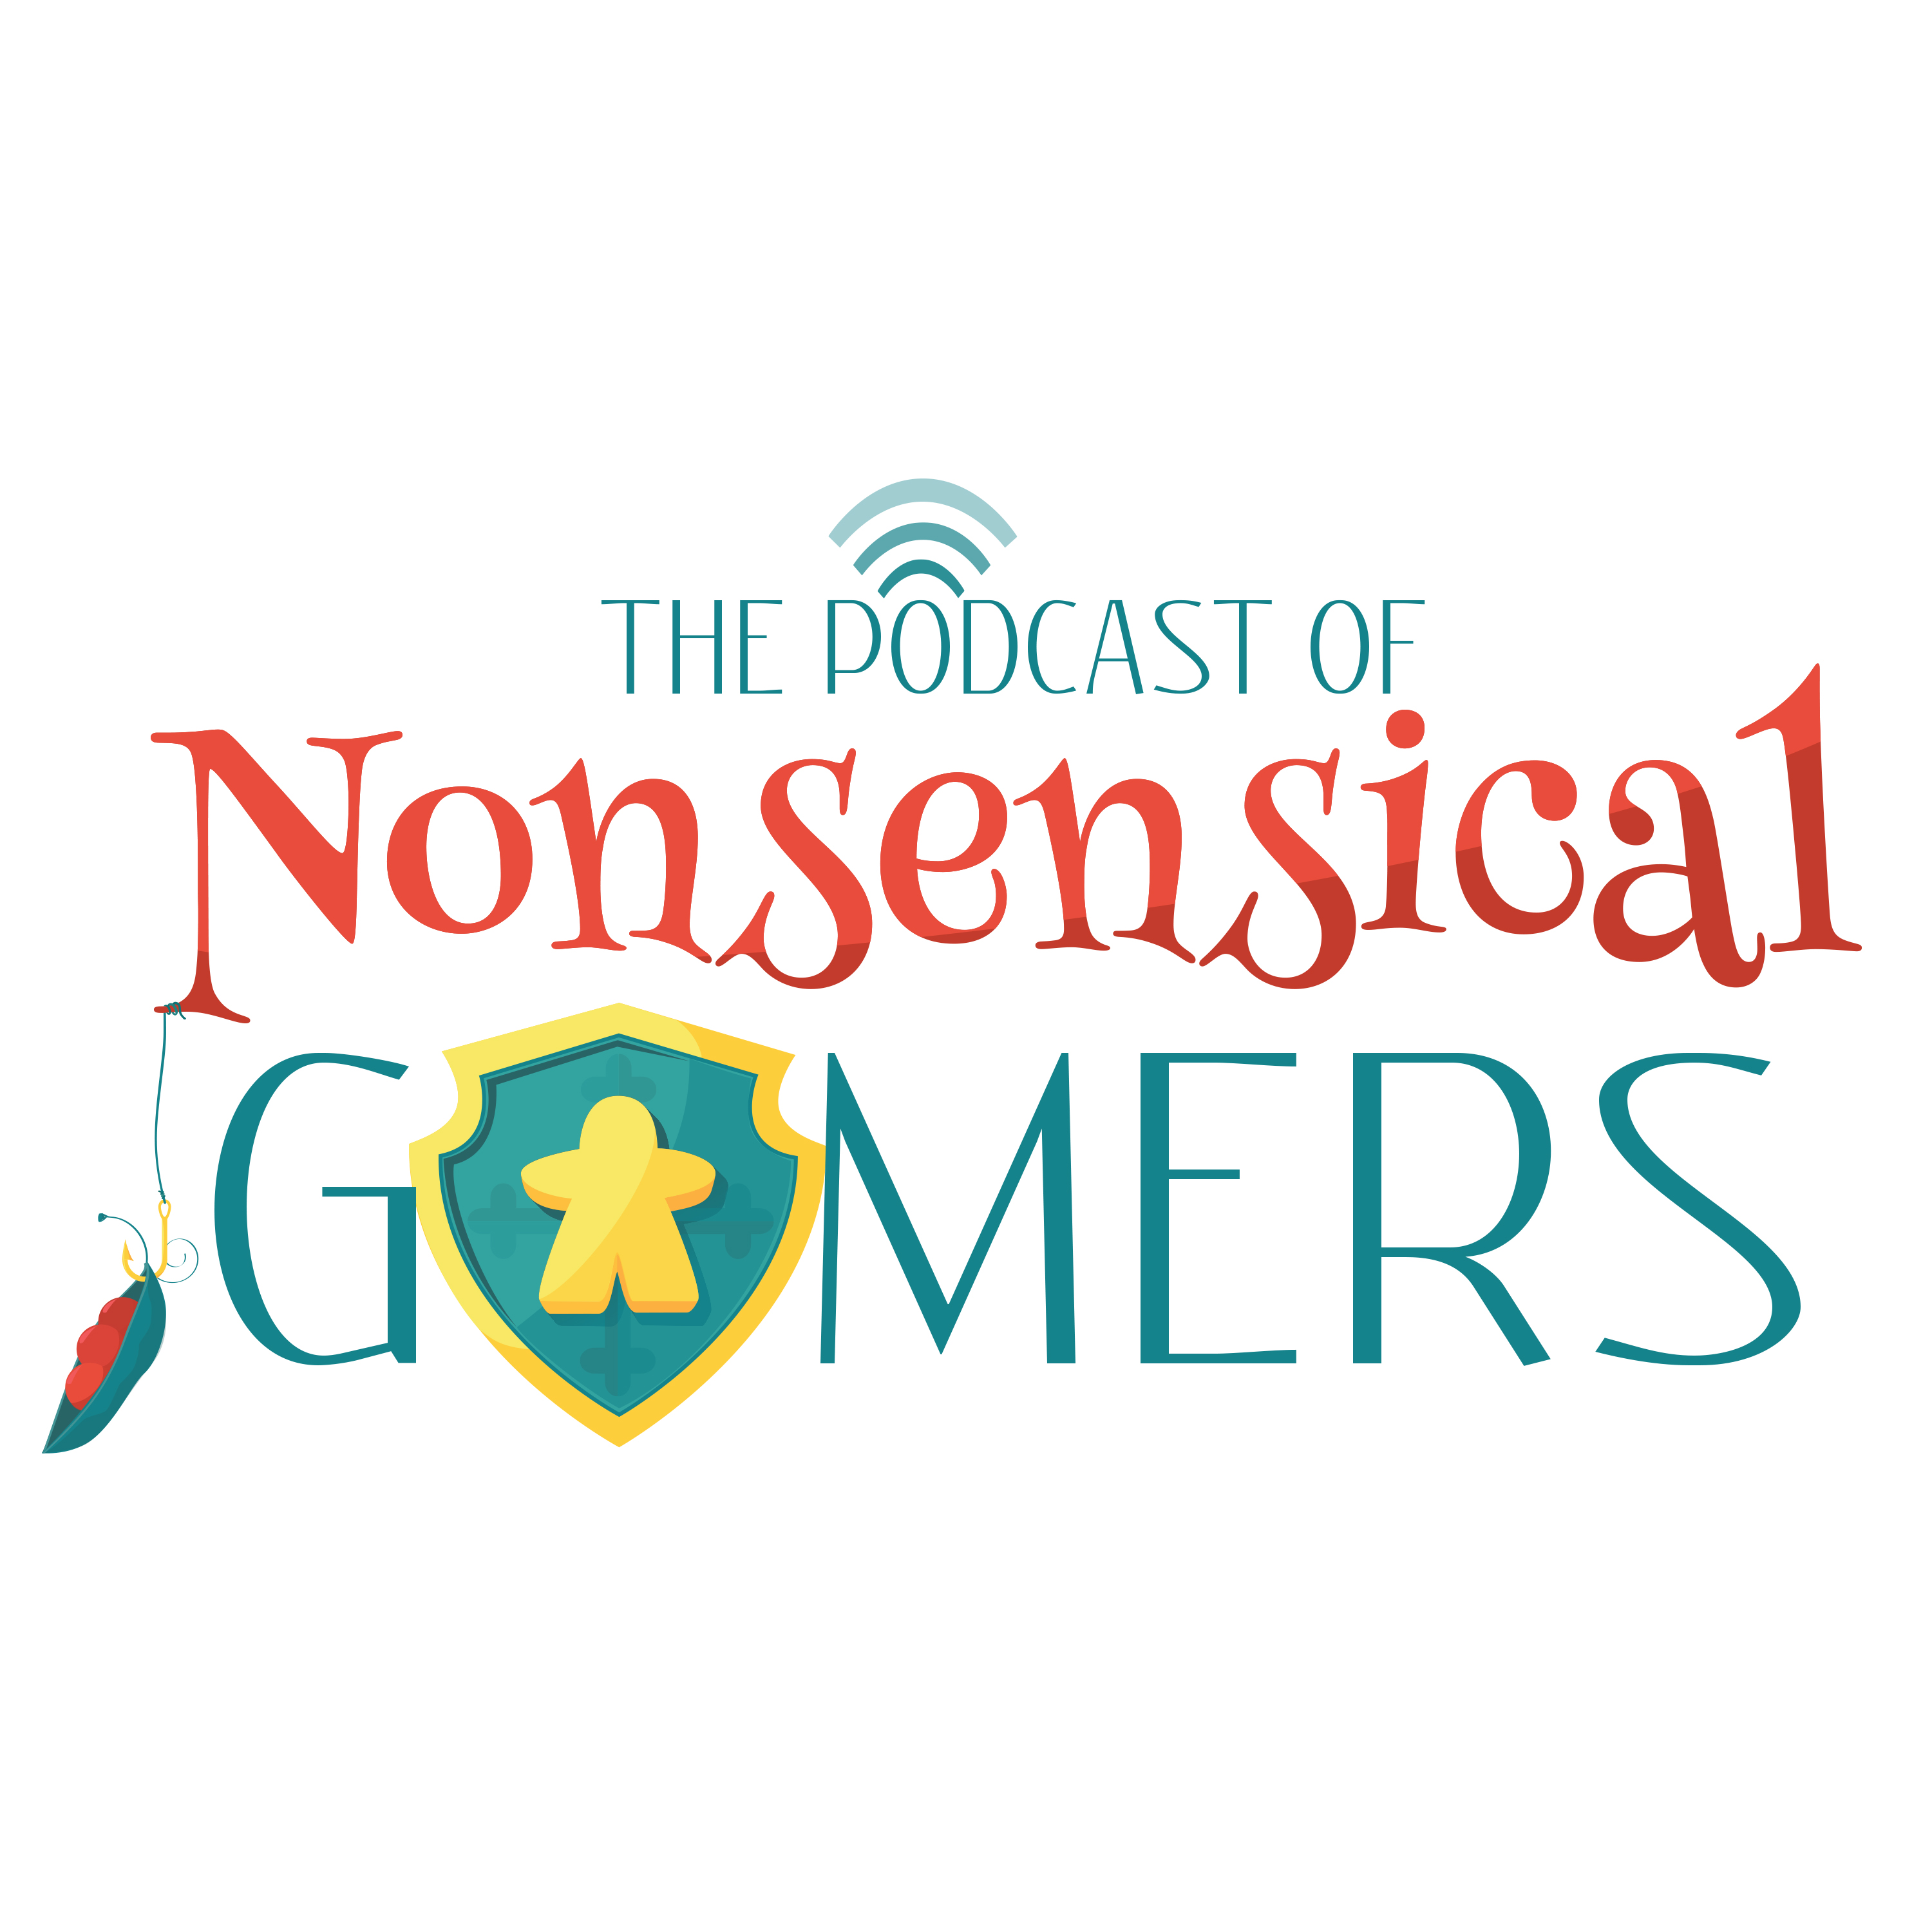 The Podcast of Nonsensical Gamers